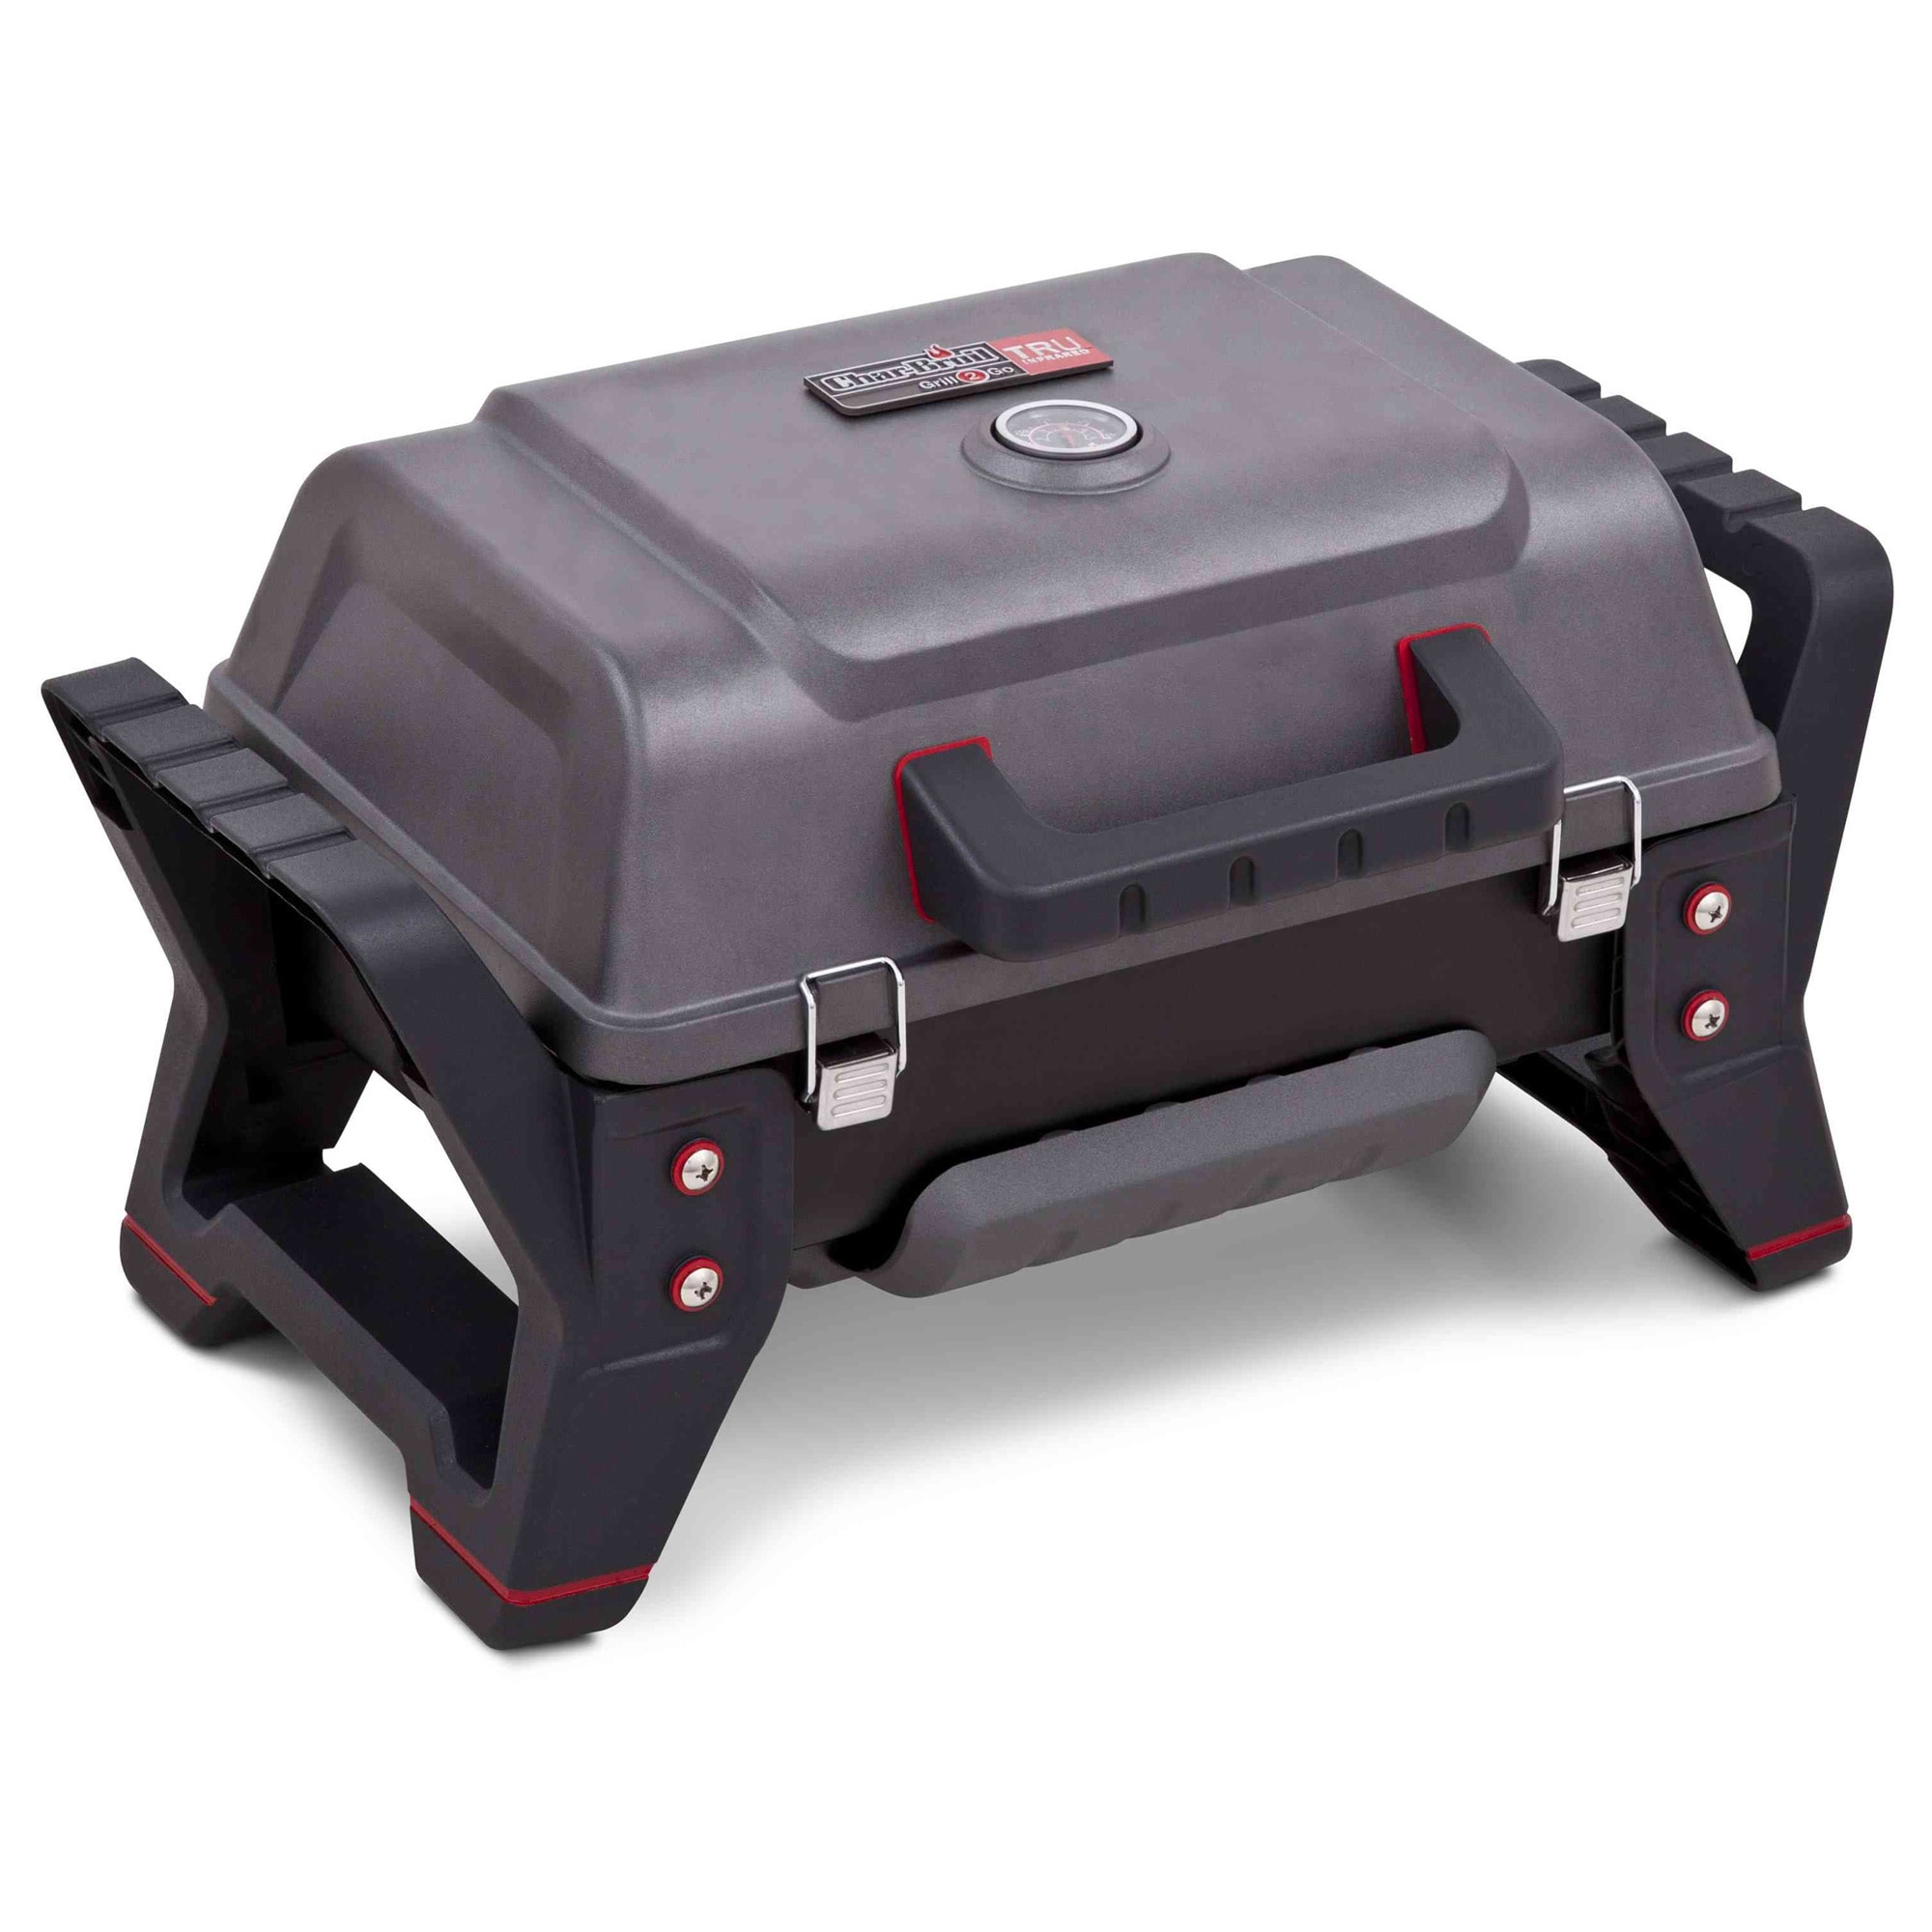 Char-Broil Grill2Go X200 TRU-Infrared Portable Gas Grill,...